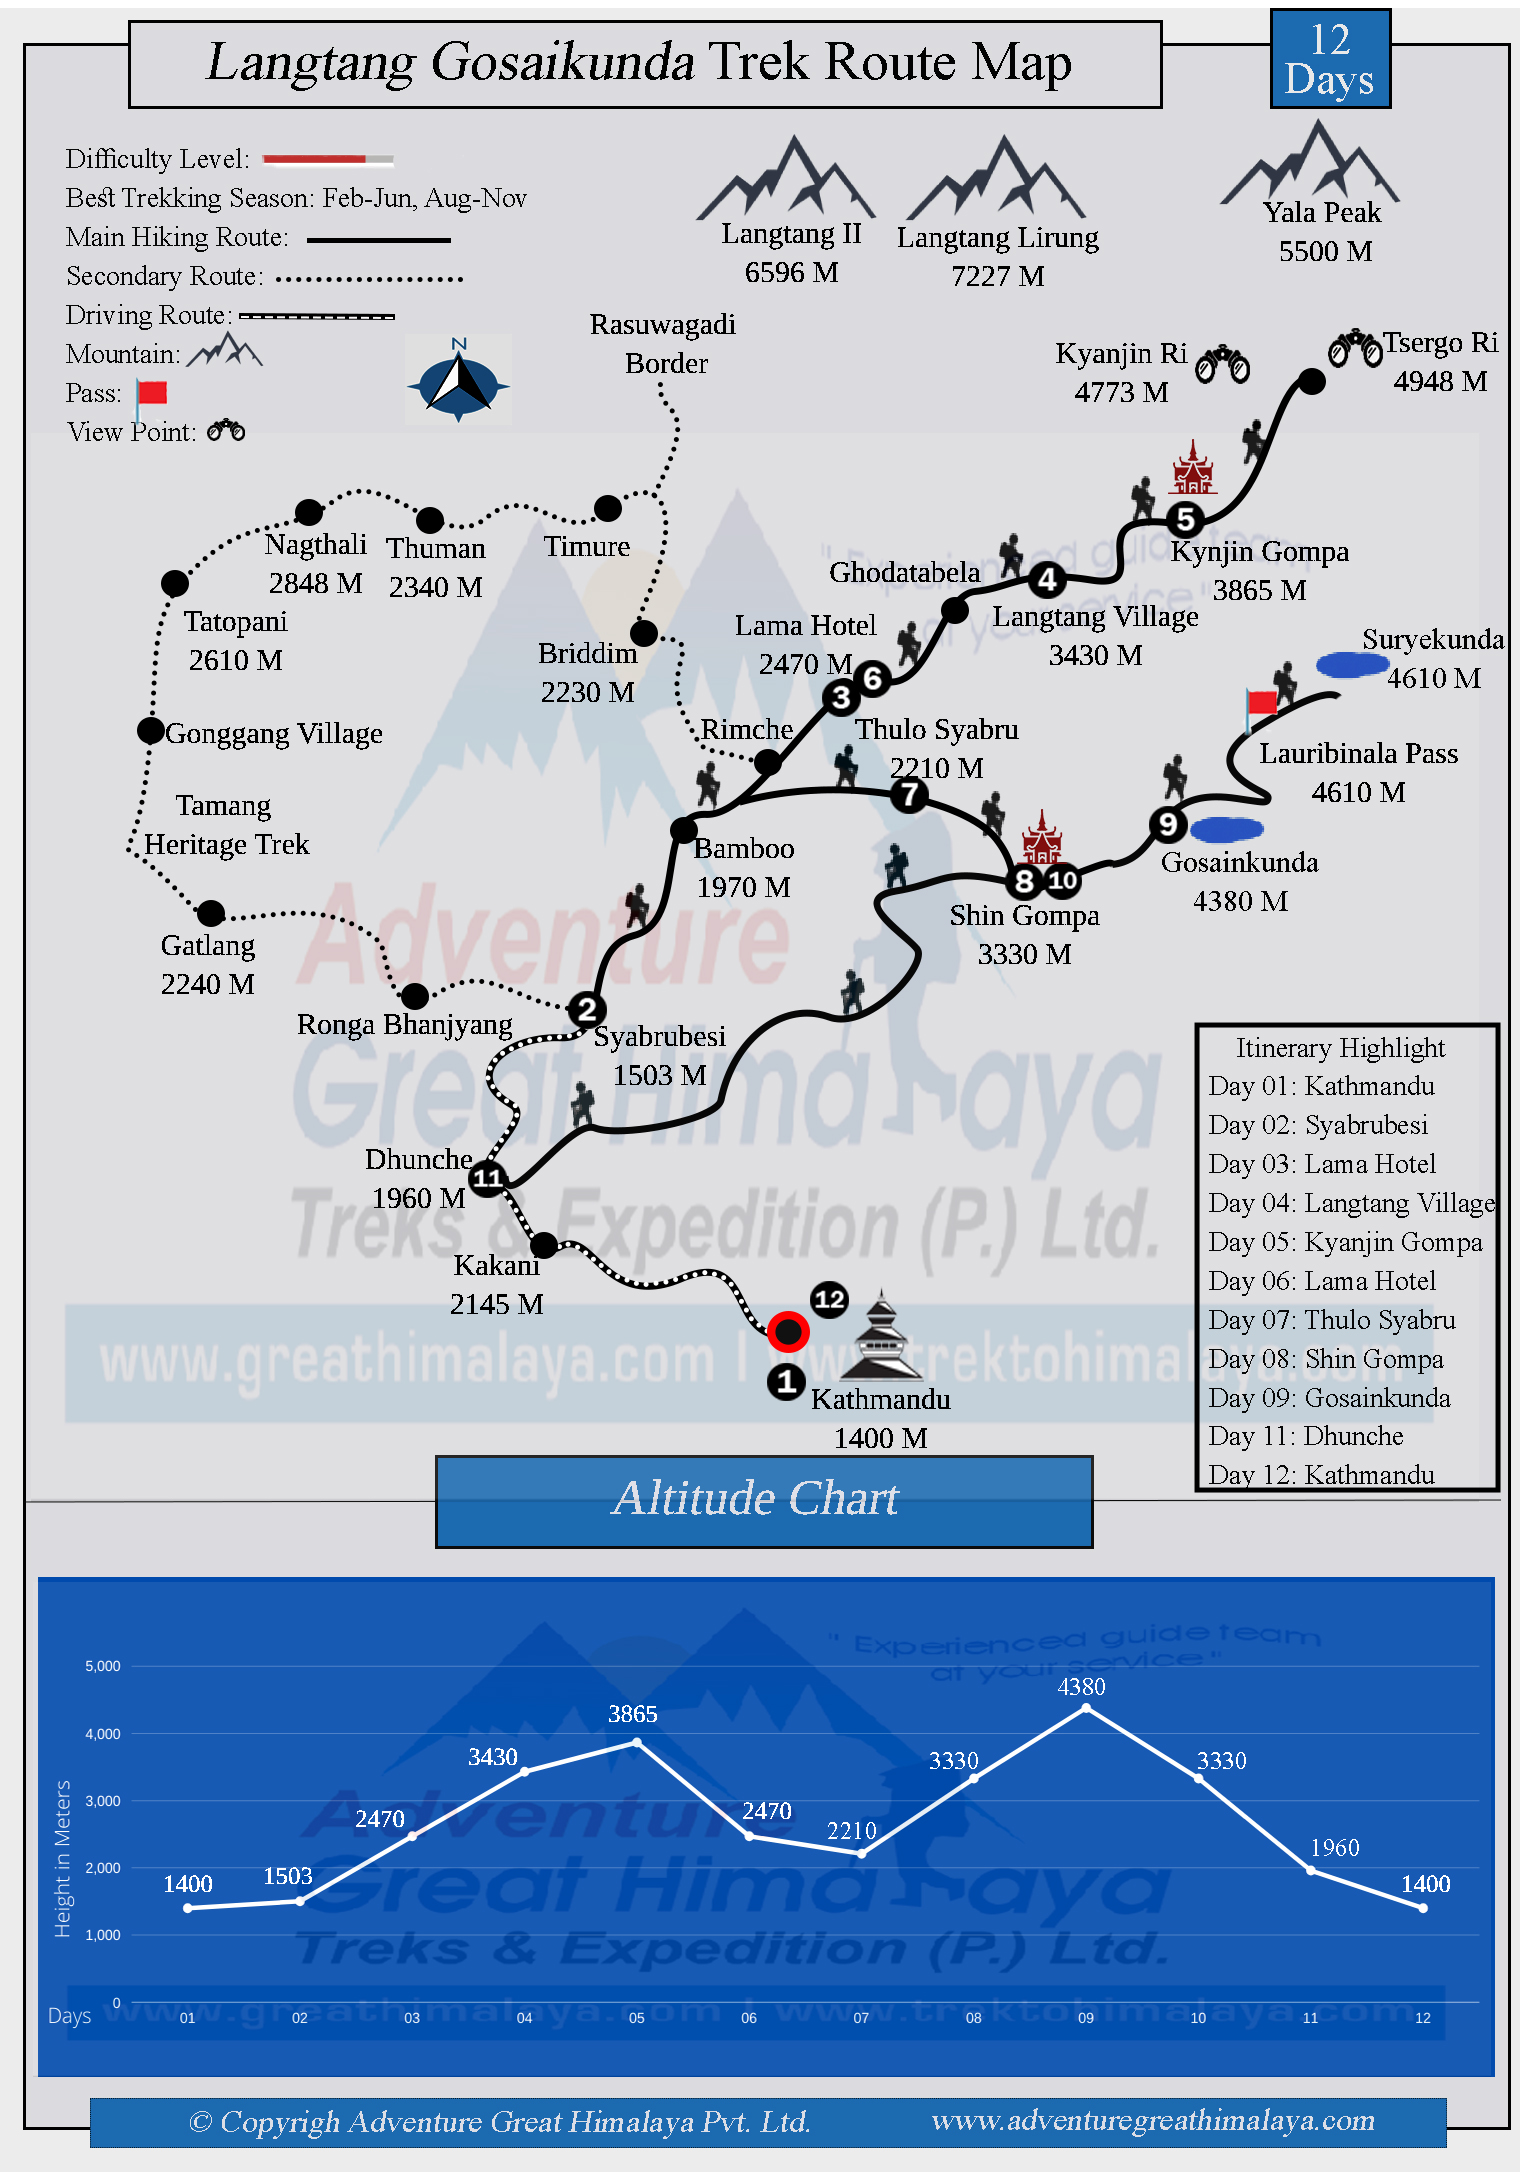 Langtang Gosaikunda Trek Route Map